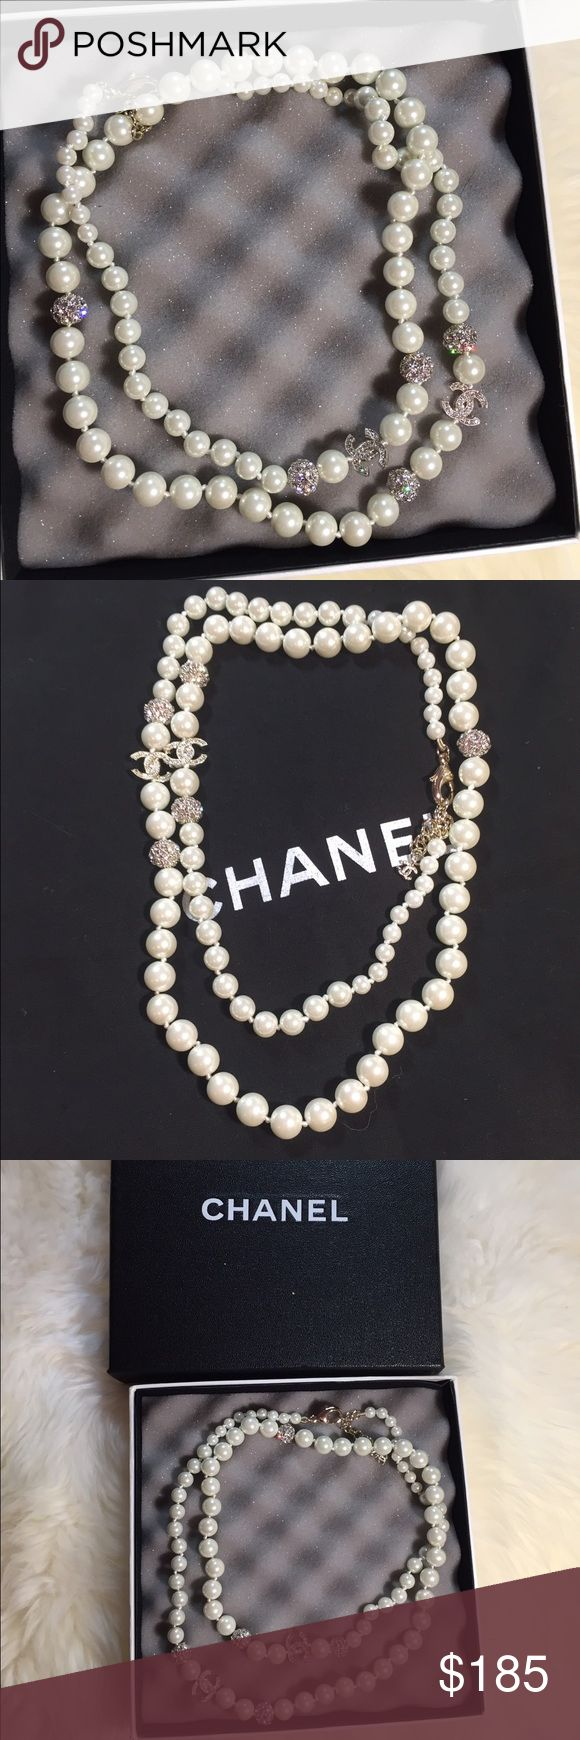 Cute long Pearl necklace New with Chanel box.Super shiny Crystal beads with Pearl necklace.With stamp on the chain ,inspired fashion jewelry only in super high quality.Price is firm but bundle to save. Jewelry Necklaces